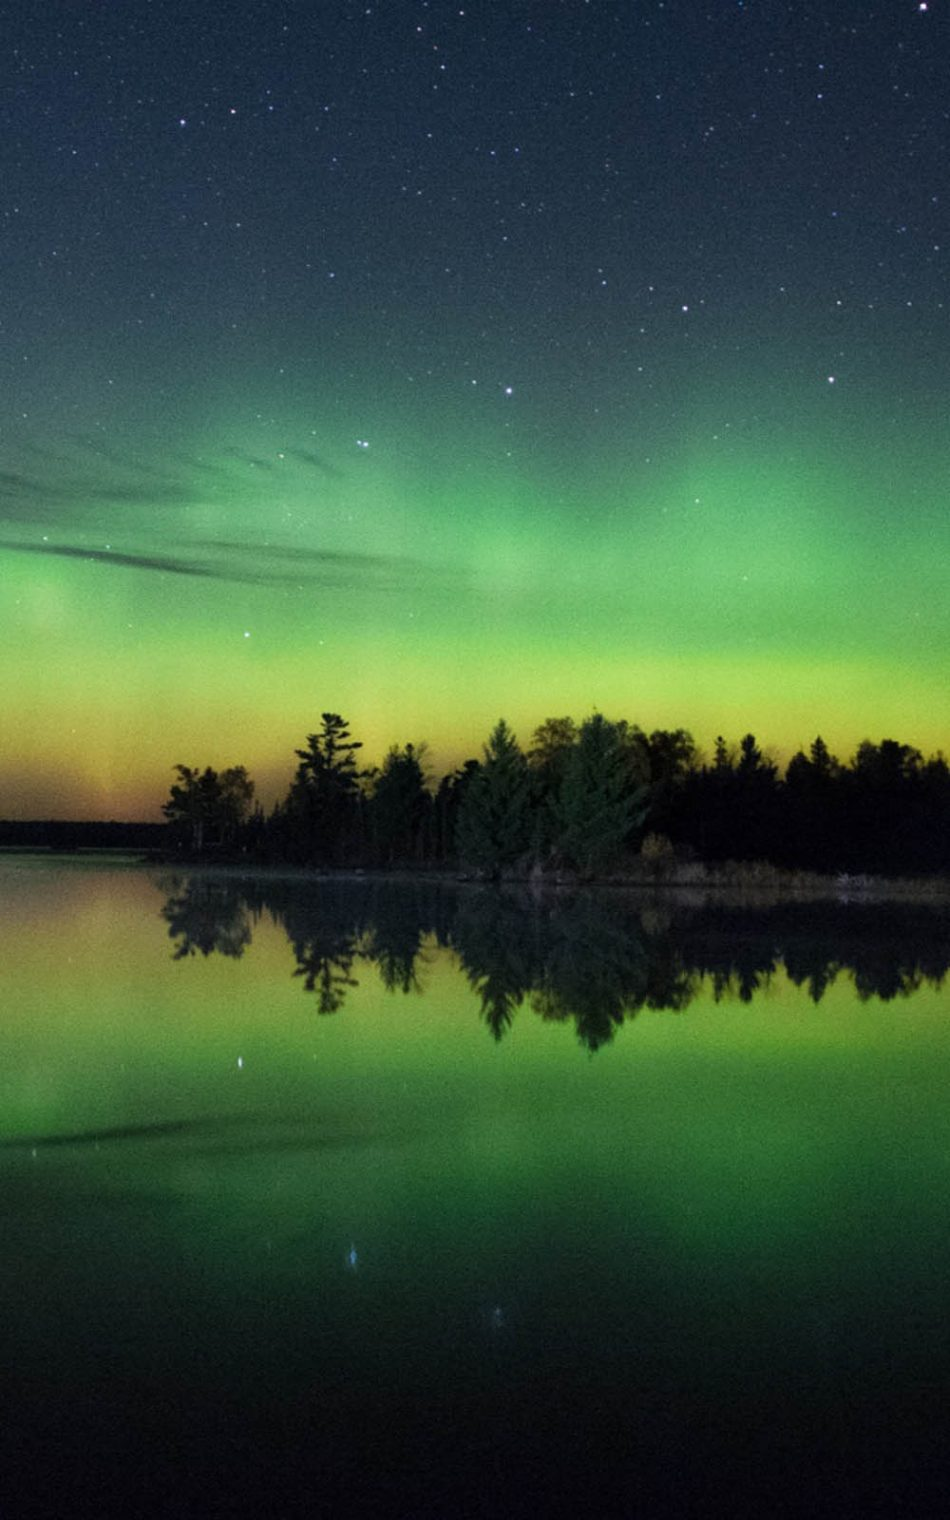 Green Starry Night Sky And River 4k Ultra Hd Mobile Wallpaper